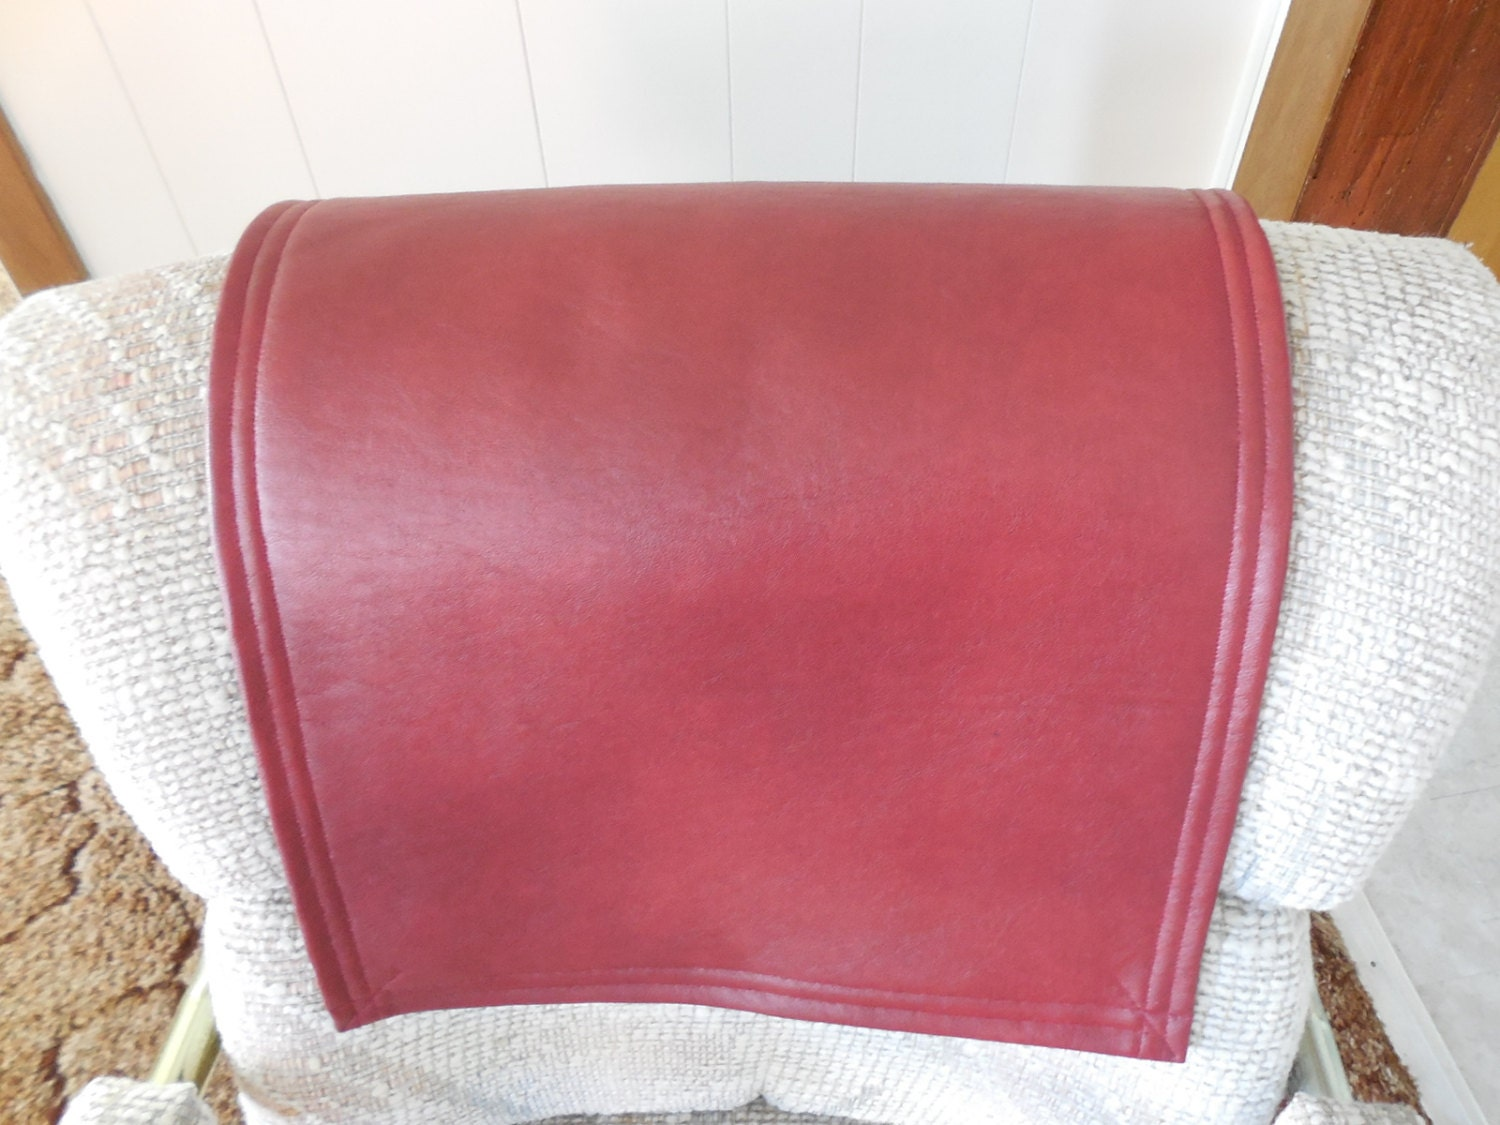 red vinyl lg 14x30recliner cover chair headrest pad by. Black Bedroom Furniture Sets. Home Design Ideas